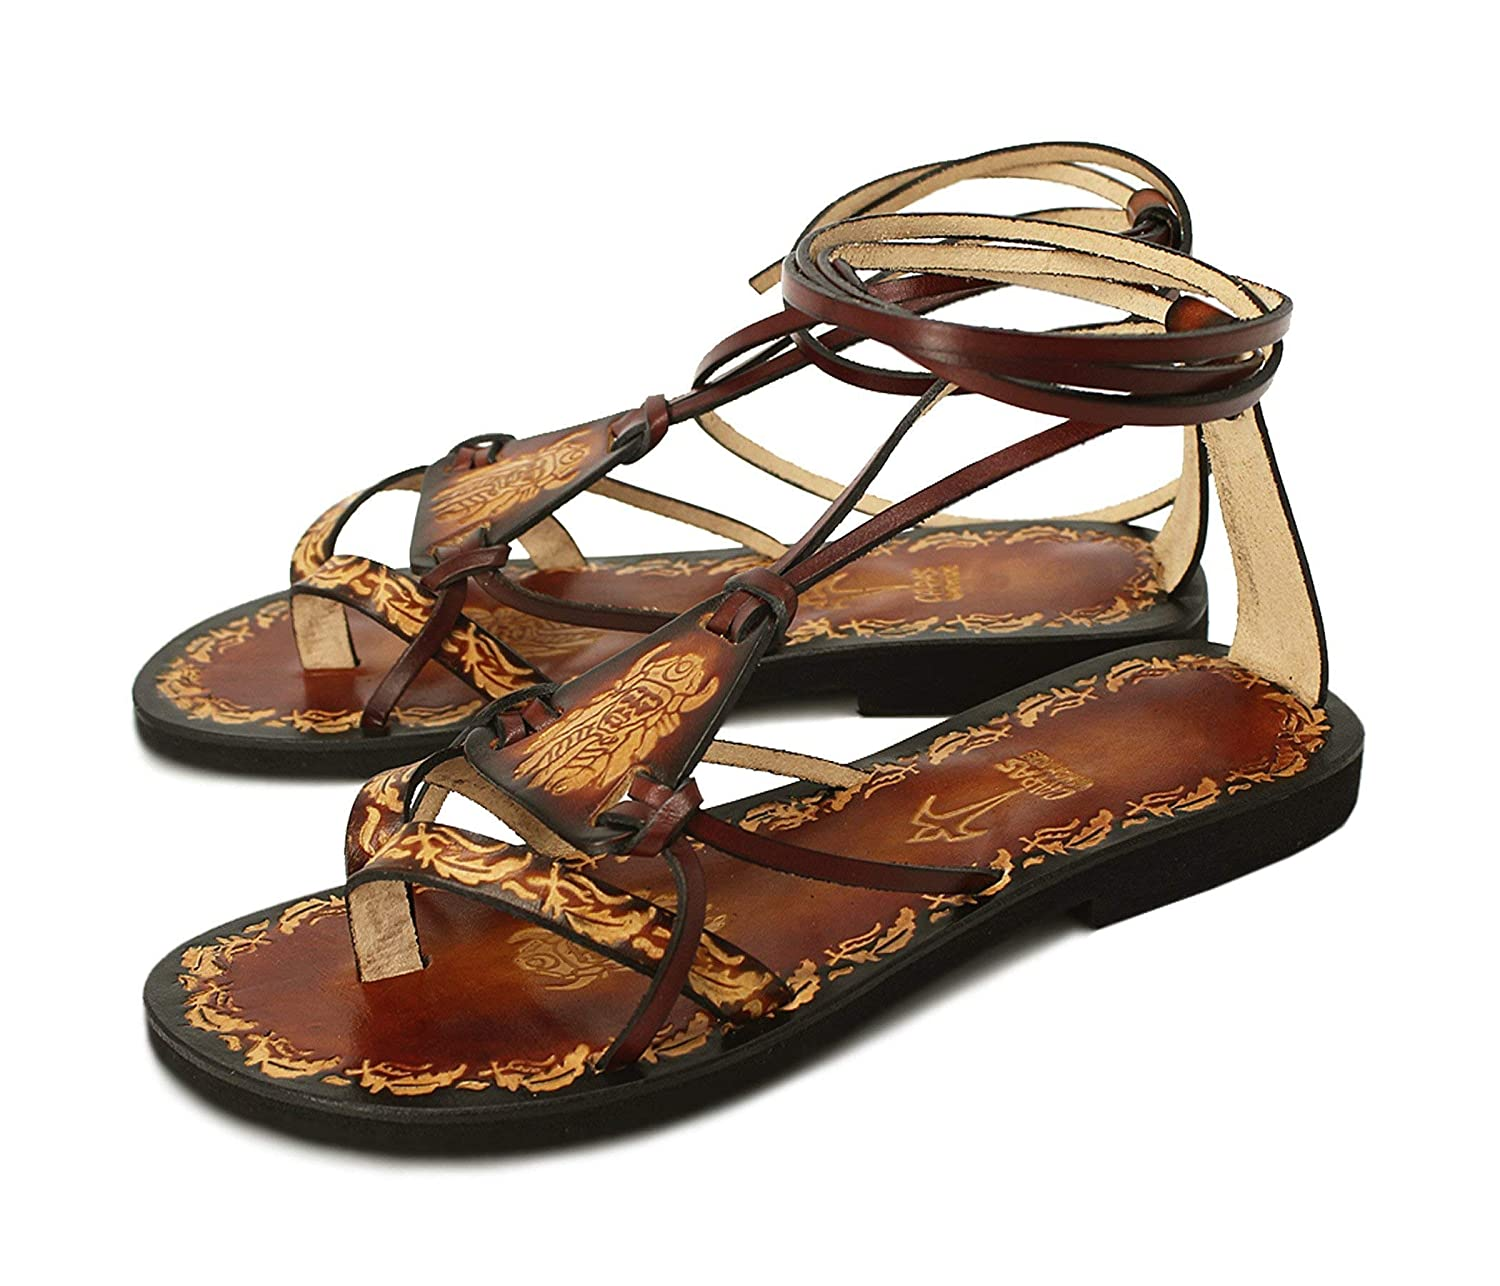 Boho Sandals, Tribal Hand painted Leather Sandals with Imprints by Calpas - FANTASY